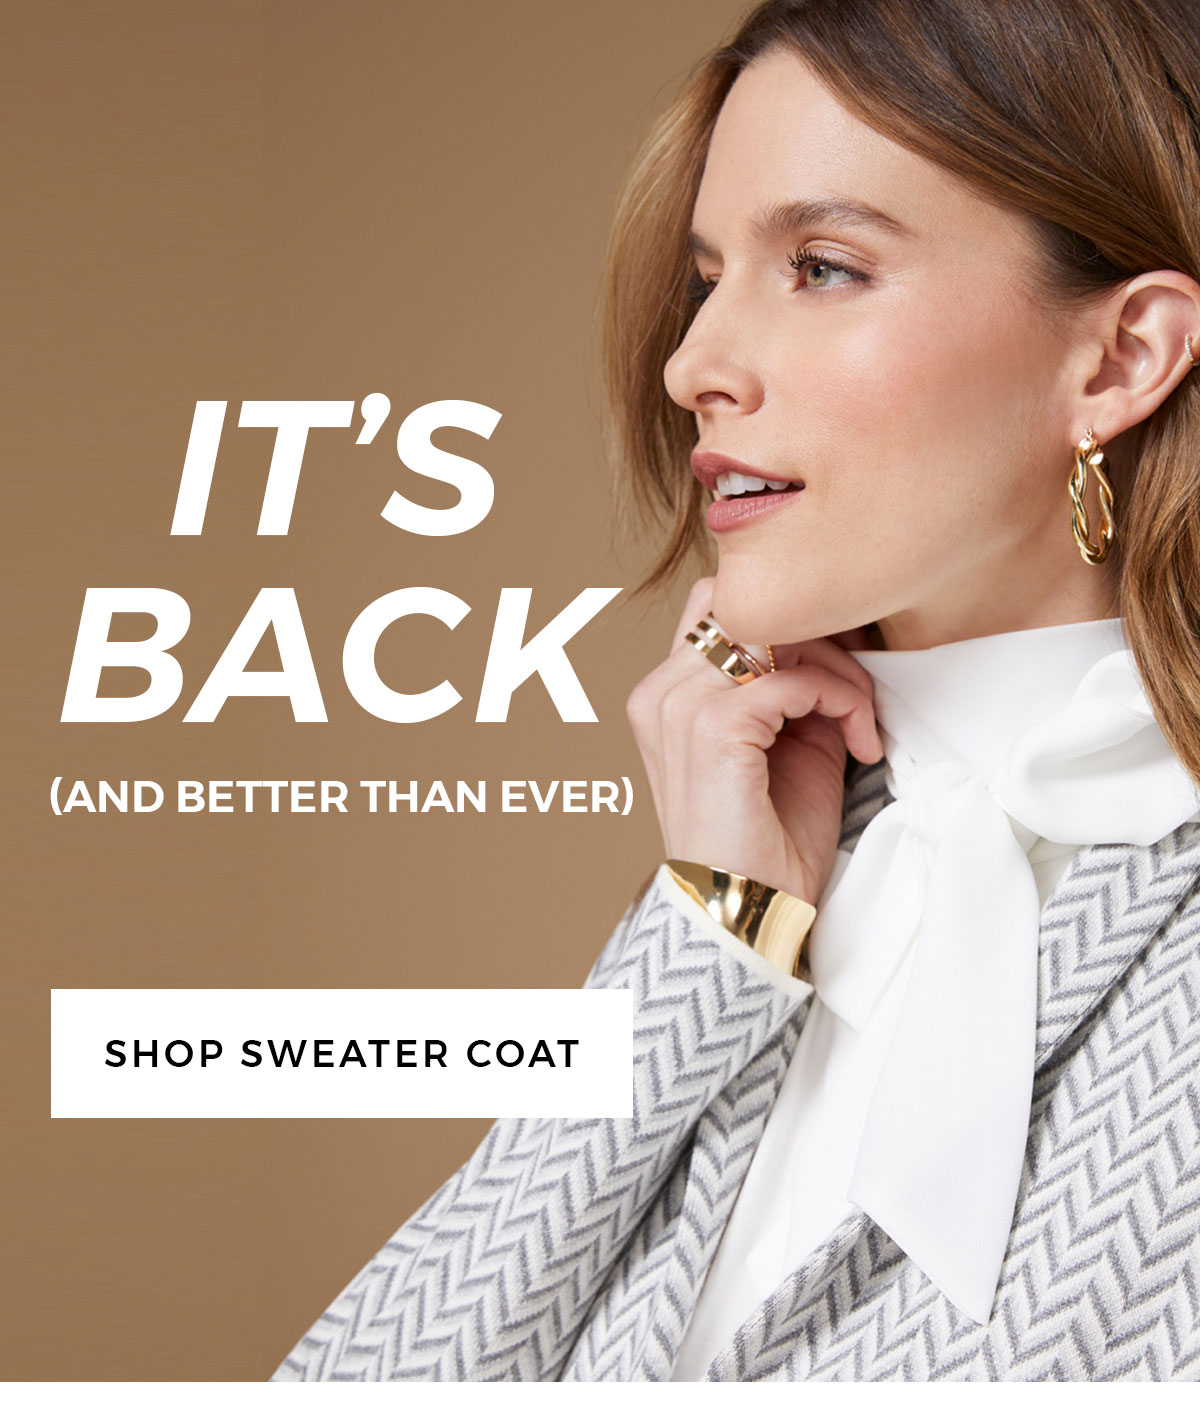 IT'S BACK (and better than ever) SHOP SWEATER COAT